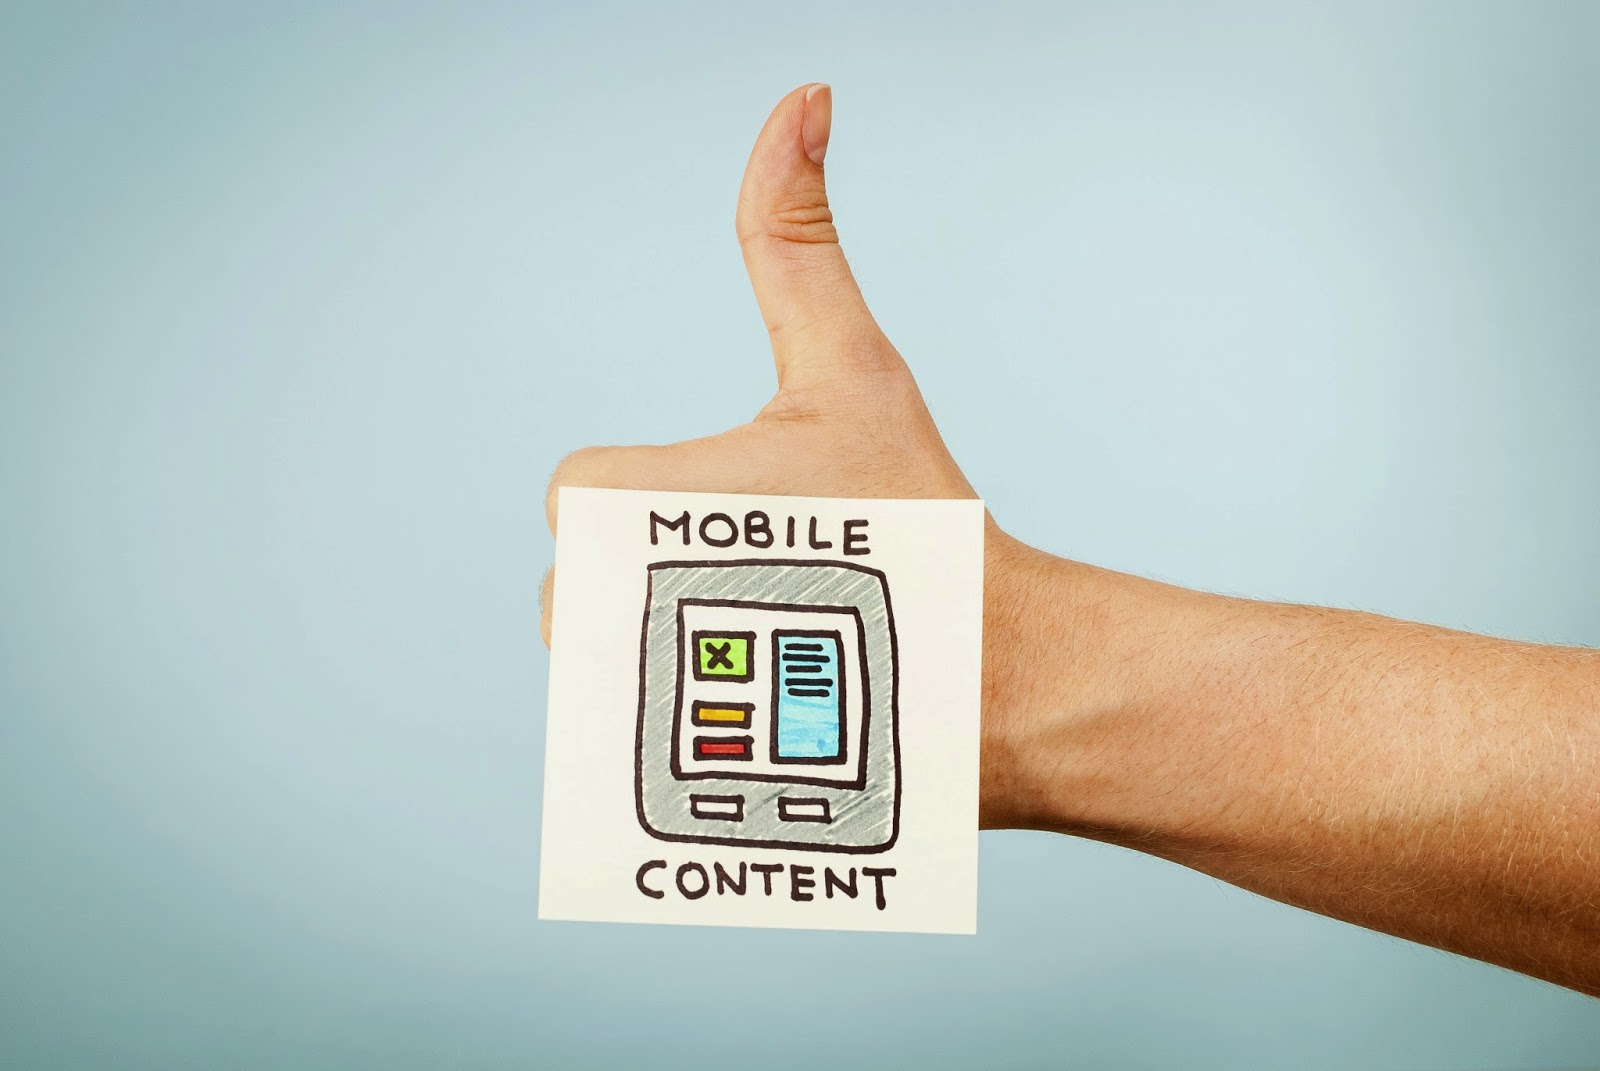 Thumbs up to an illustration of mobile content